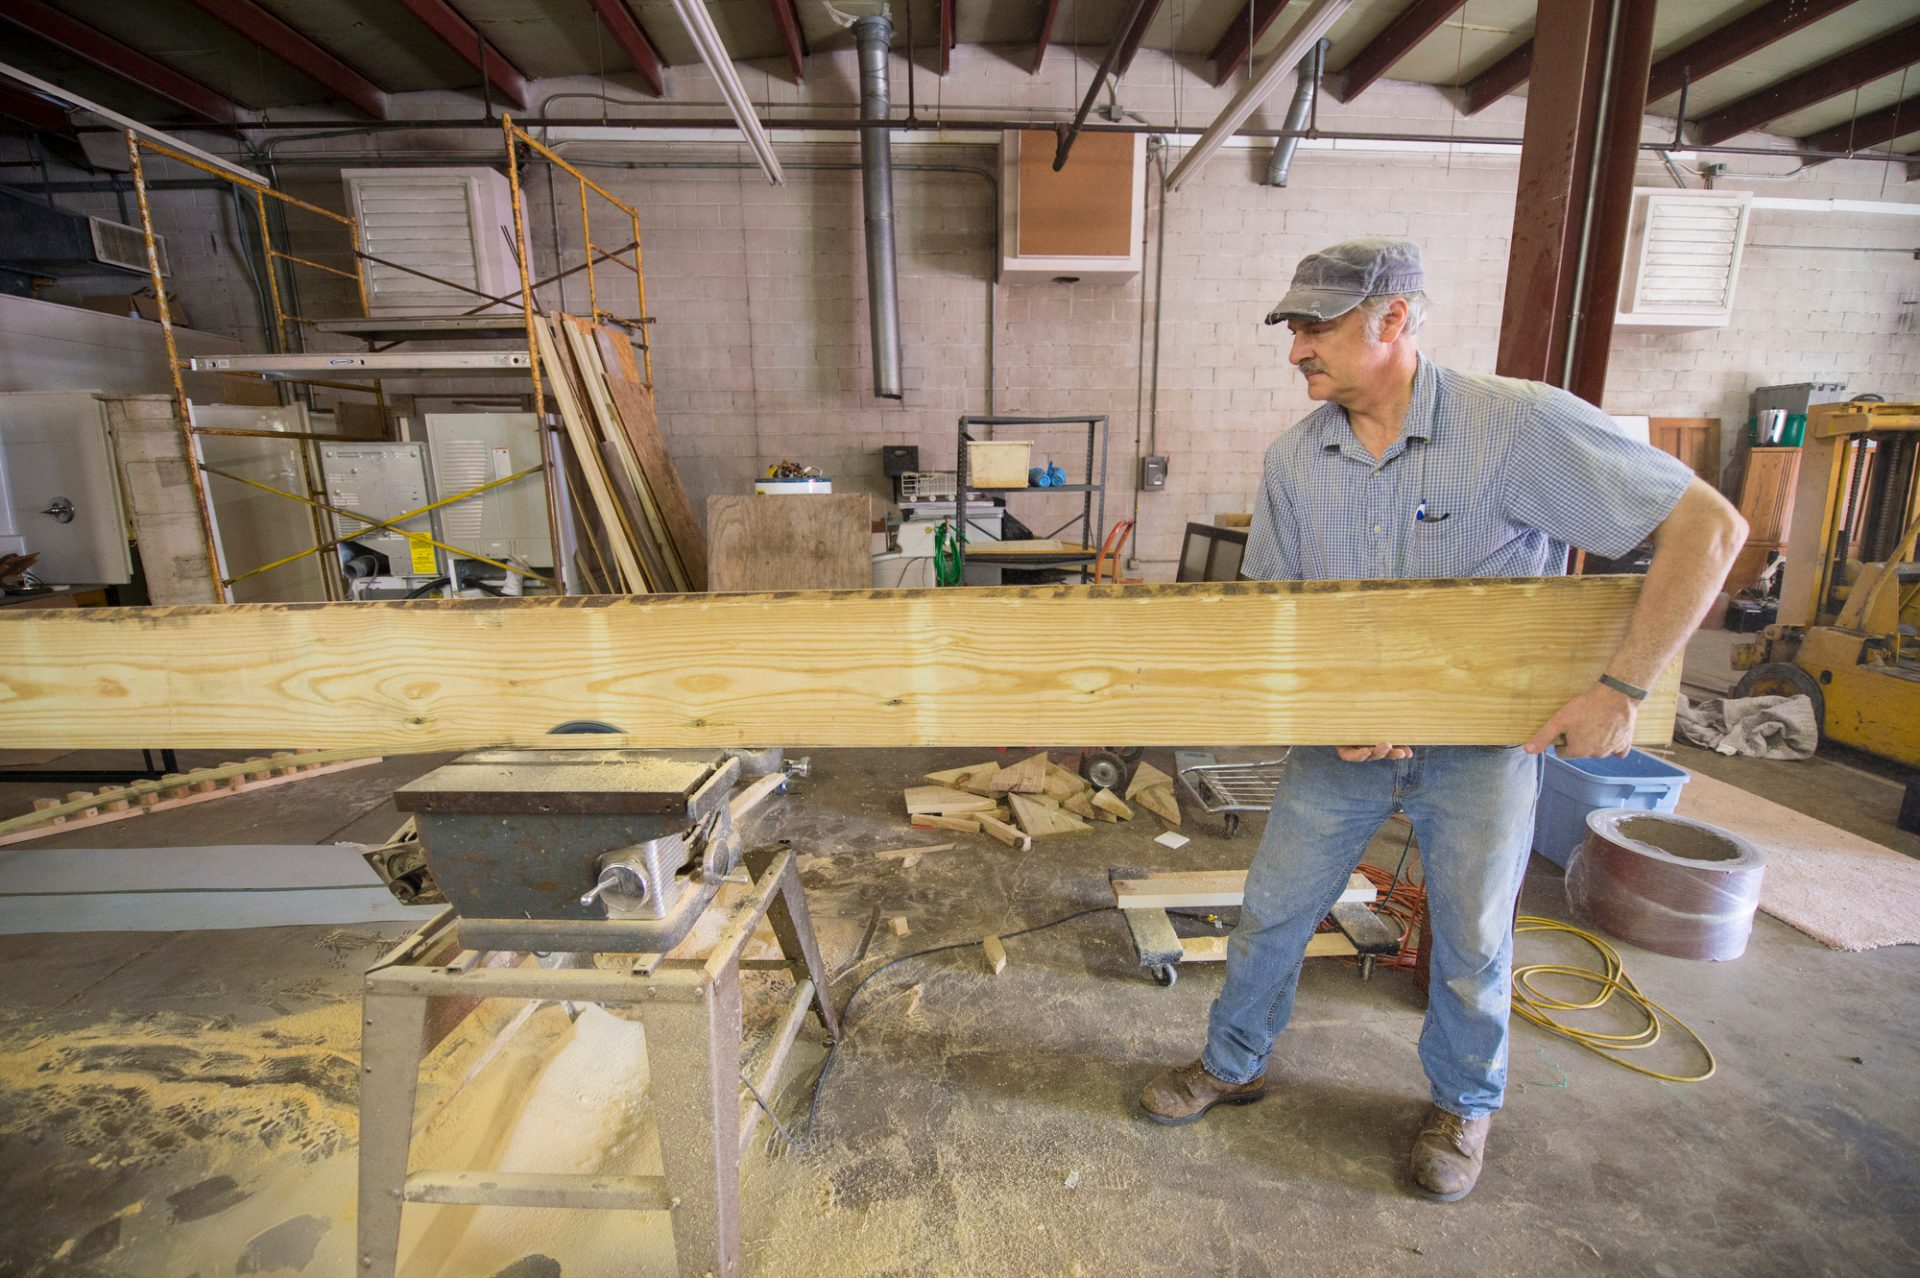 Photo: A man works in his wood shop.